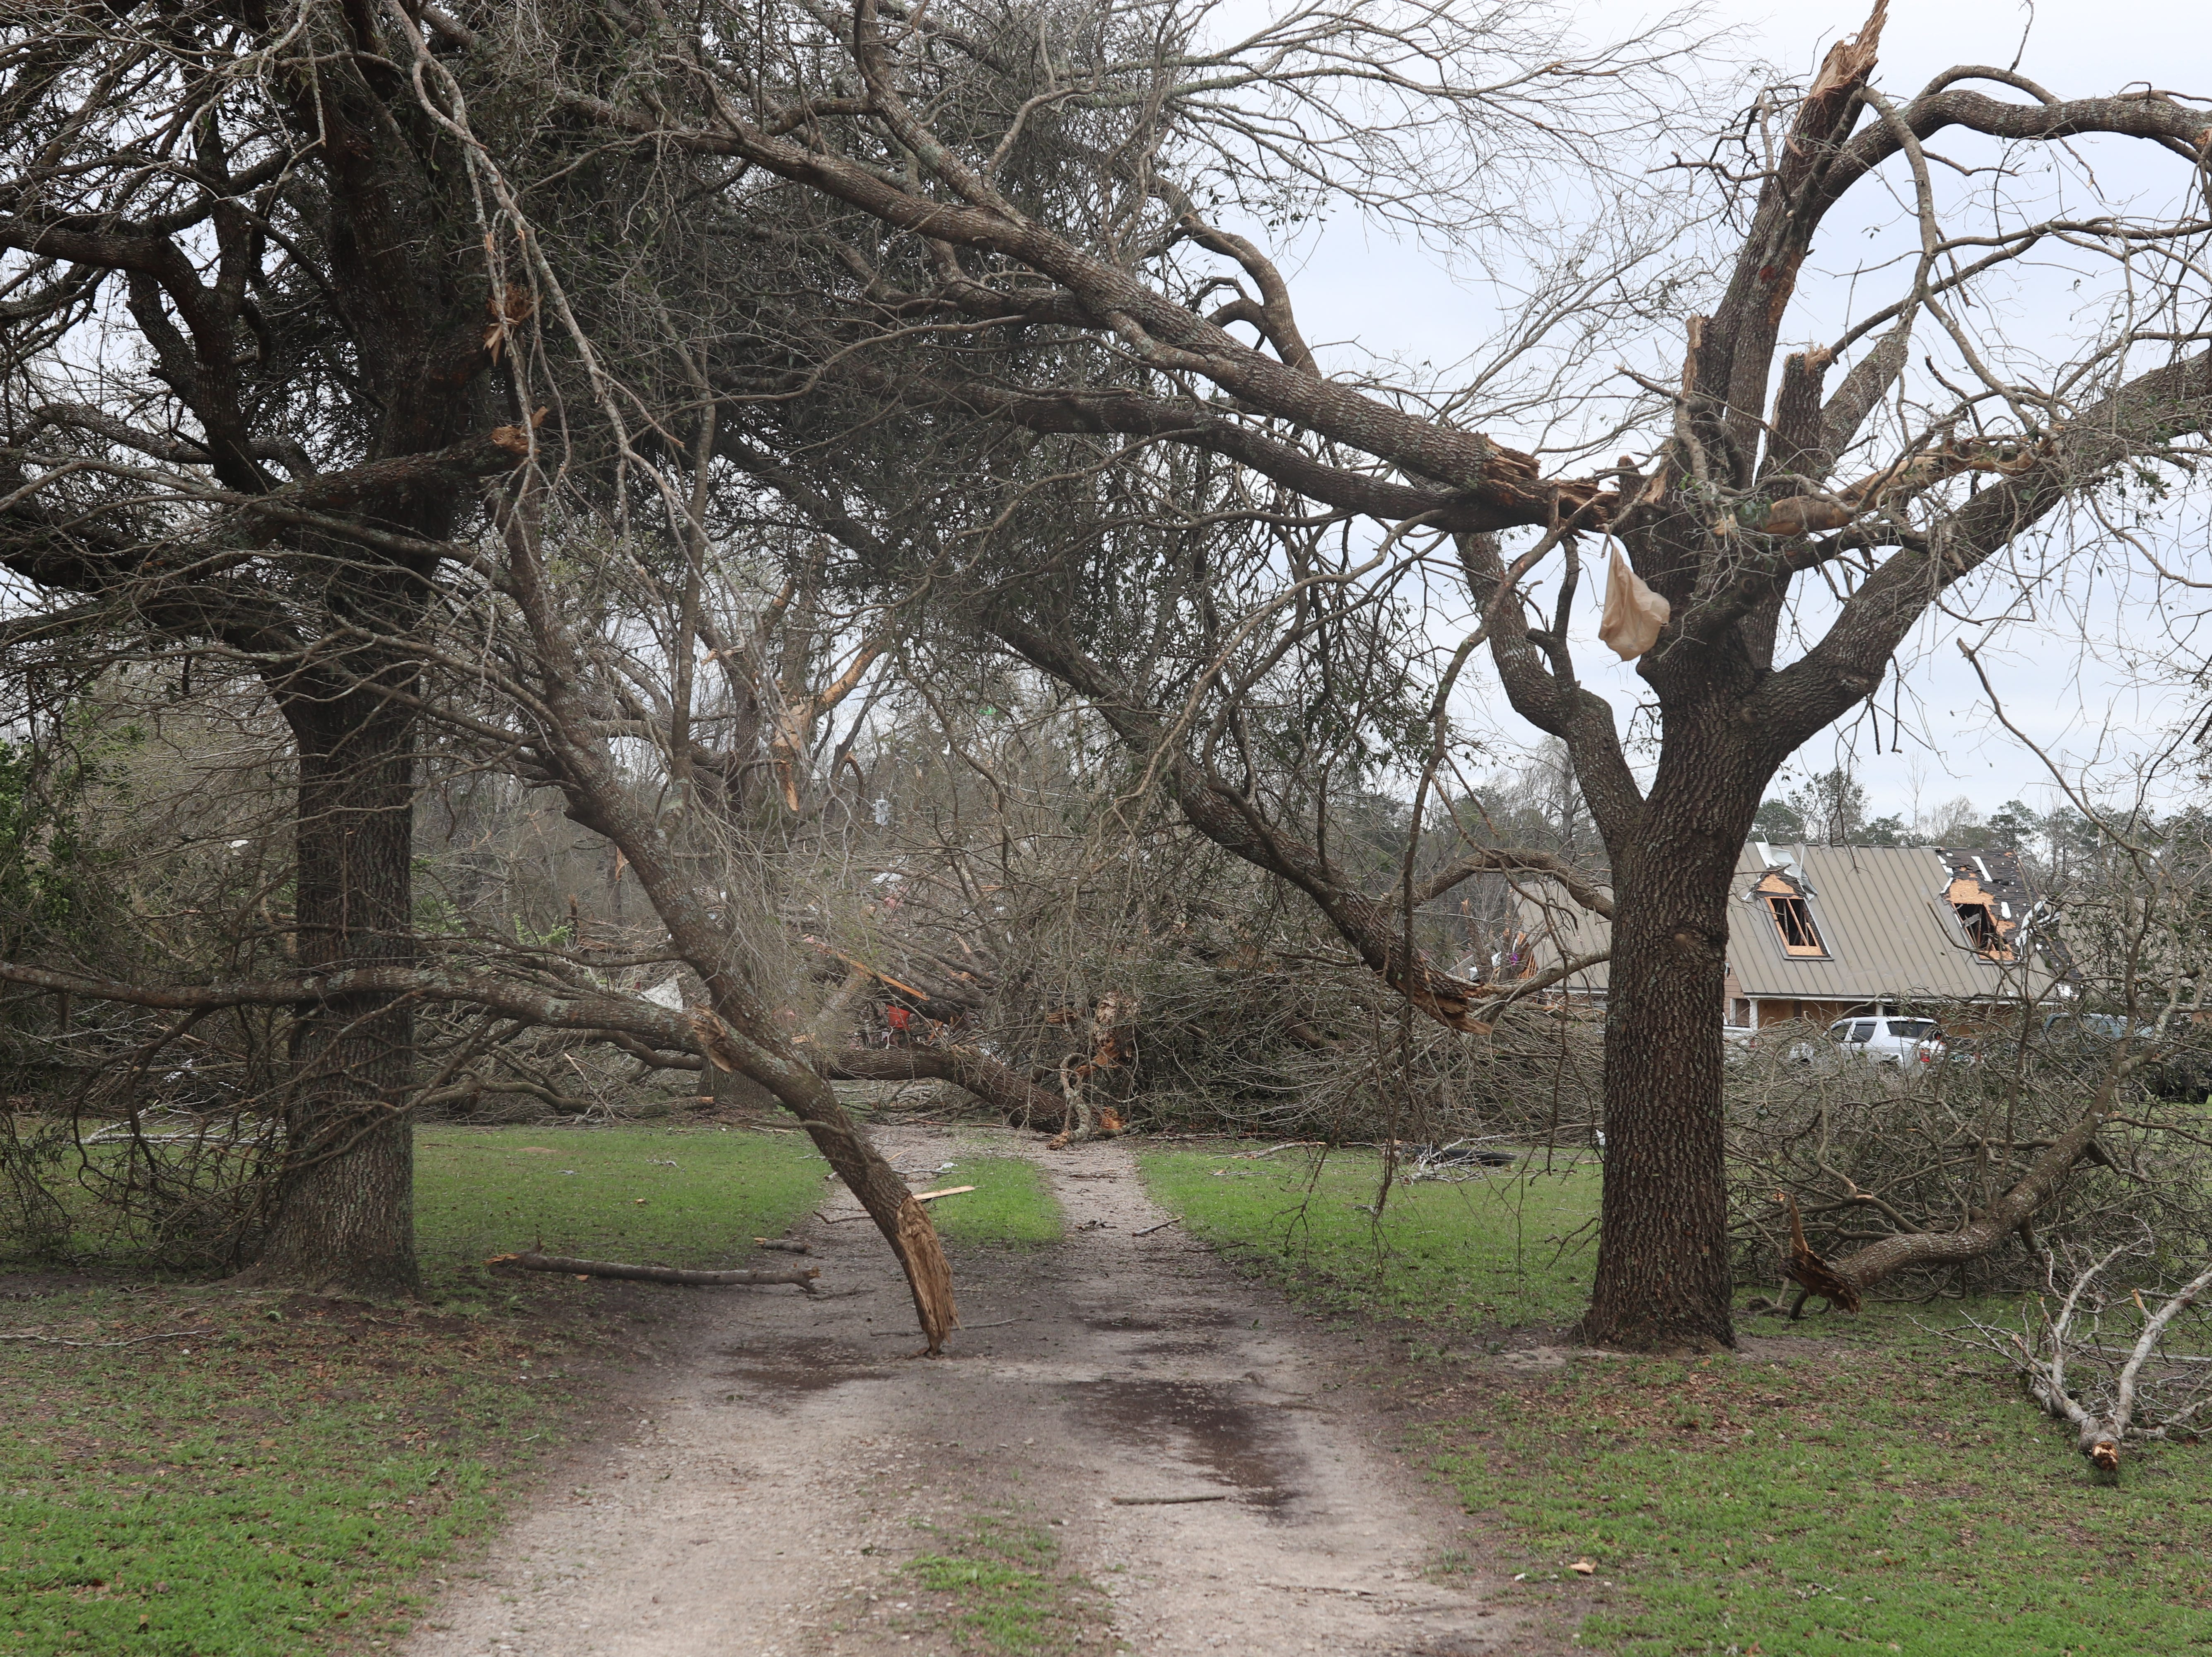 A driveway is blocked by downed trees in the Baum Community after a tornado hit Sunday March 3.